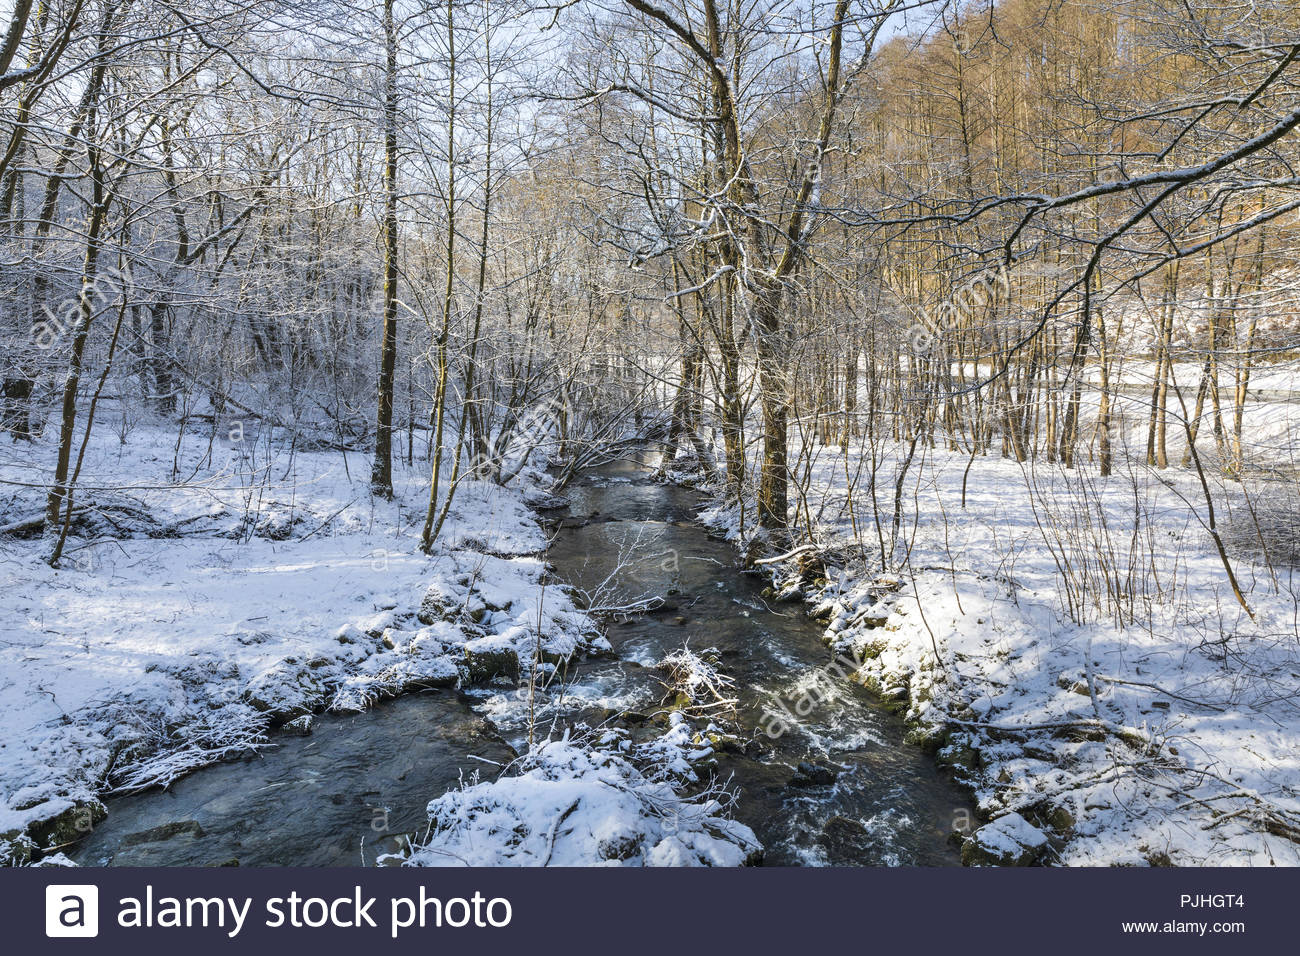 stream schede at schede valley at naturpark münden between mielenhausen and volkmarshausen, göttingen district, lower saxony, germany, february 2018 - Stock Image